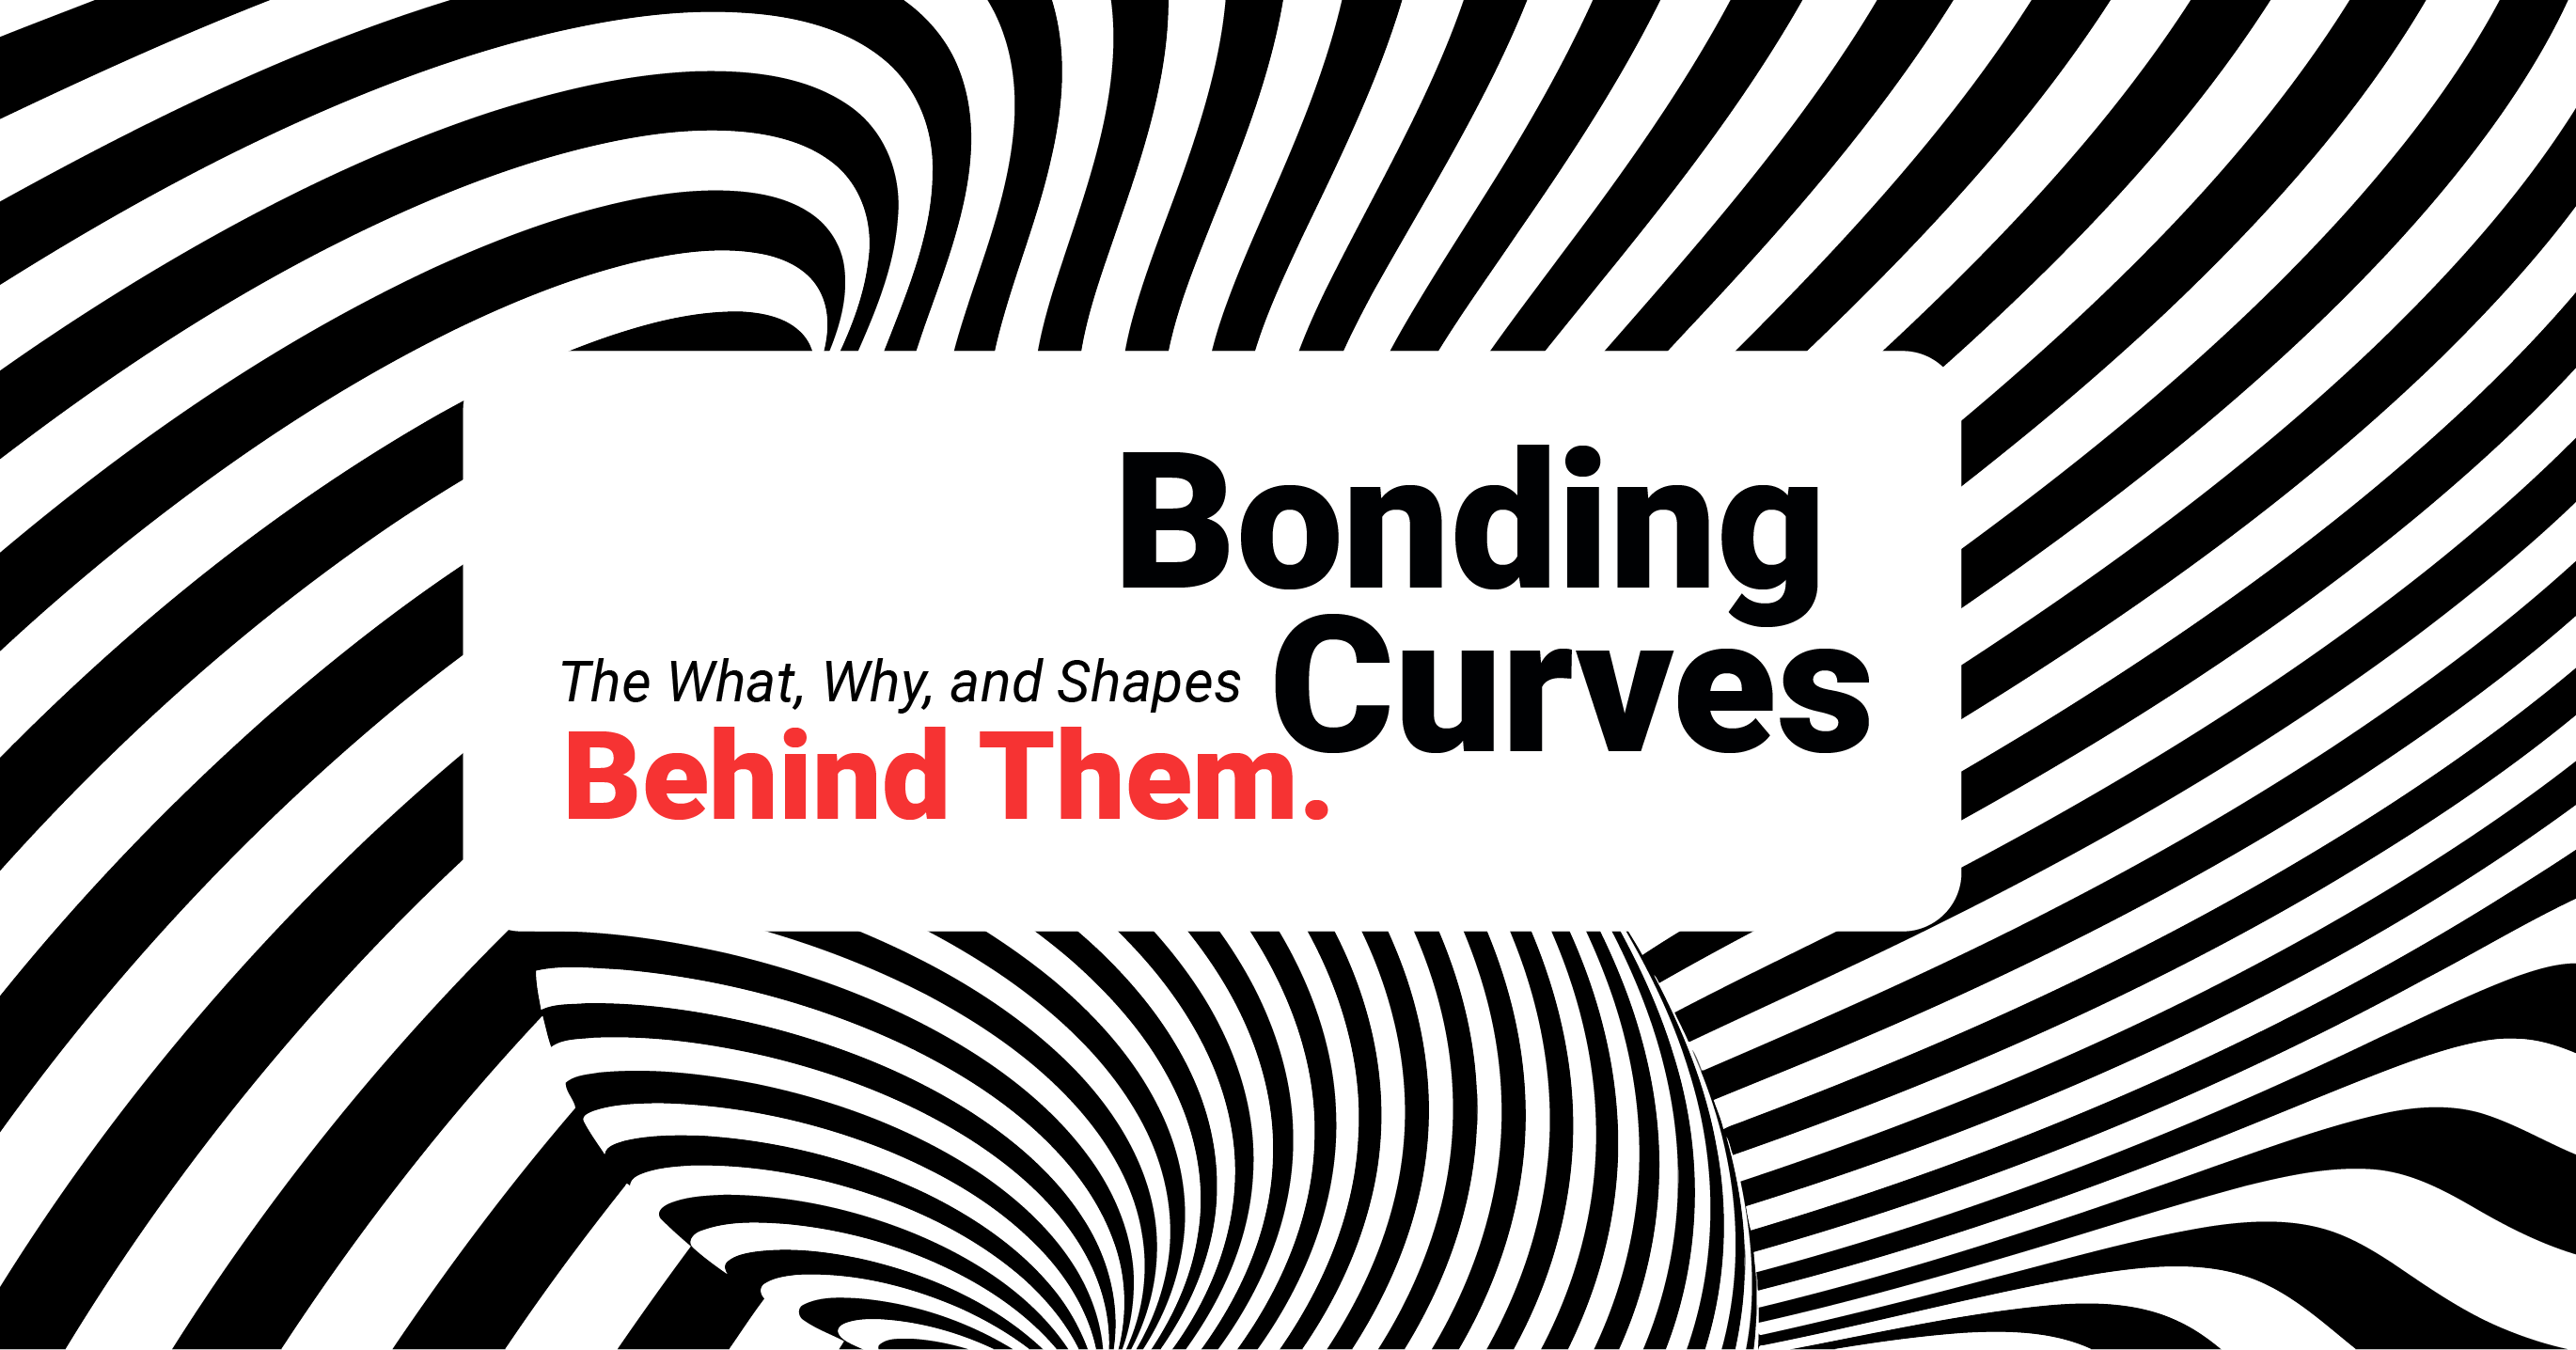 Bonding Curves - The What, Why, and Shapes Behind Them